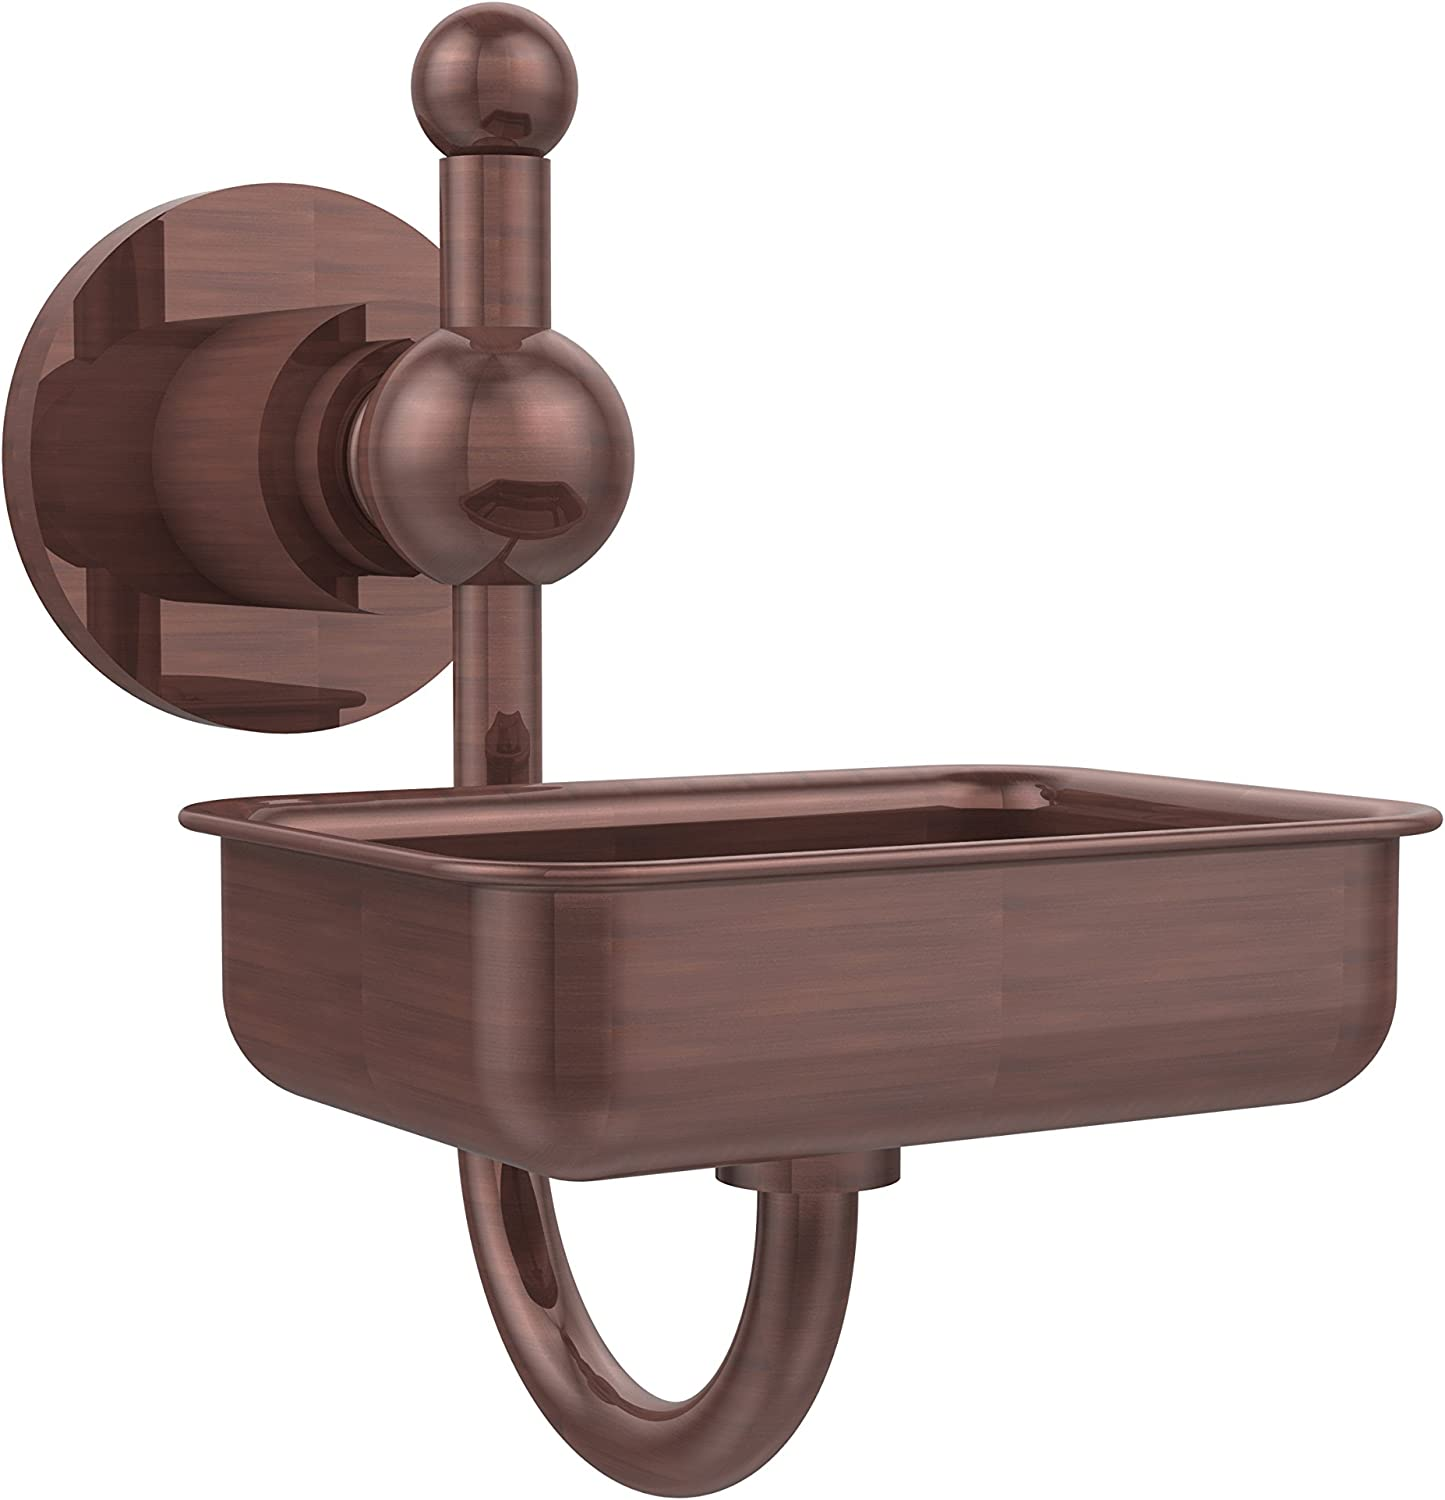 Allied Brass Astor Place Wall Mounted Soap Dish, AP-32-CA